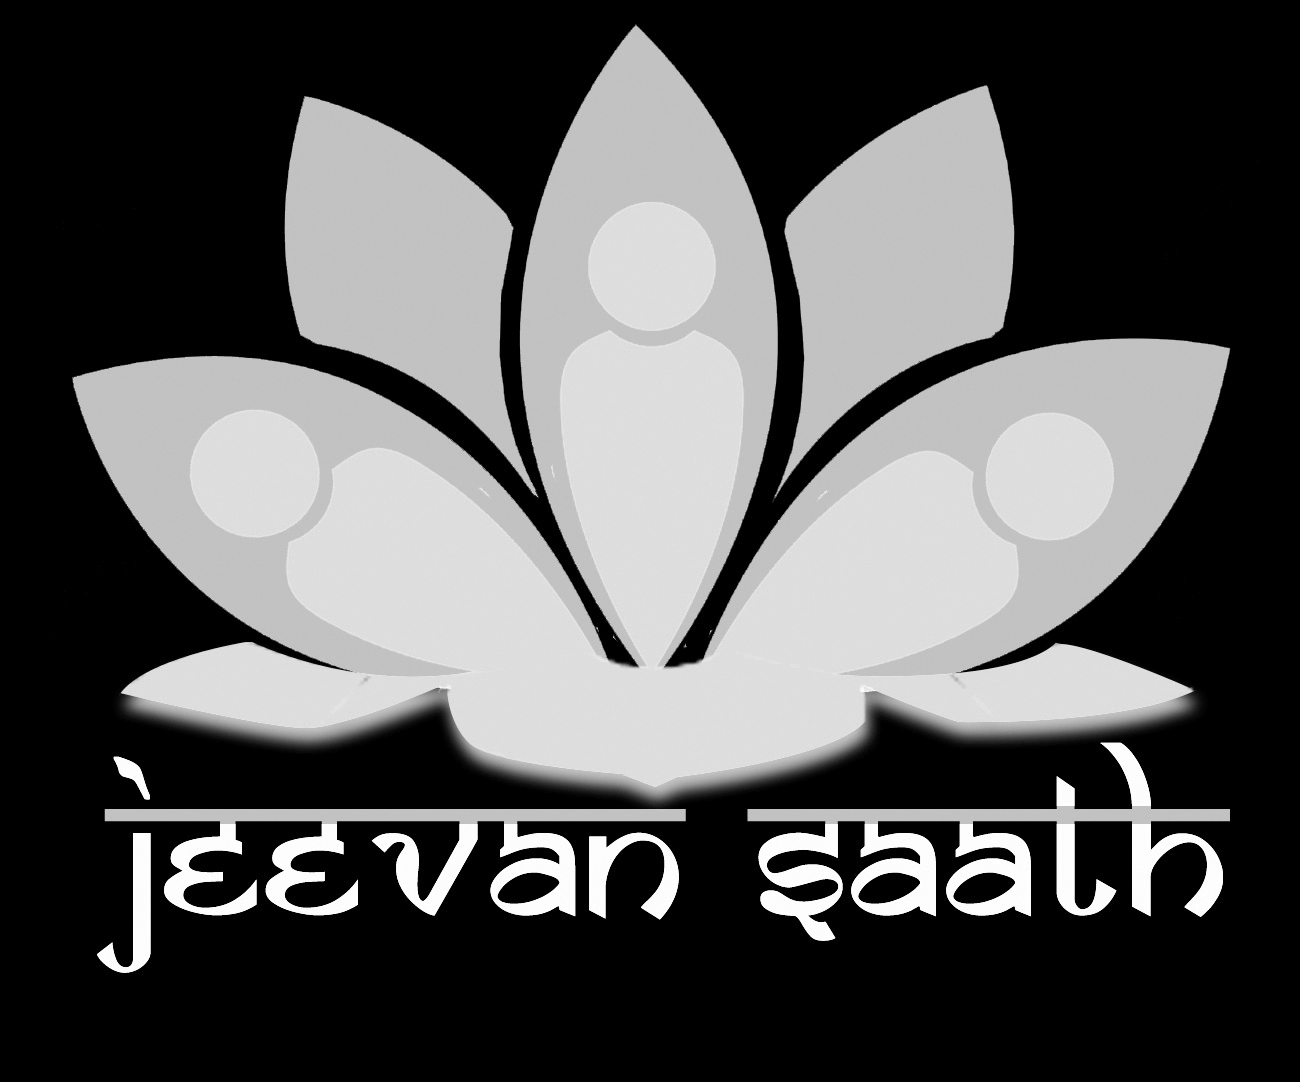 Jeevan Saath Logo (Inverted).jpg